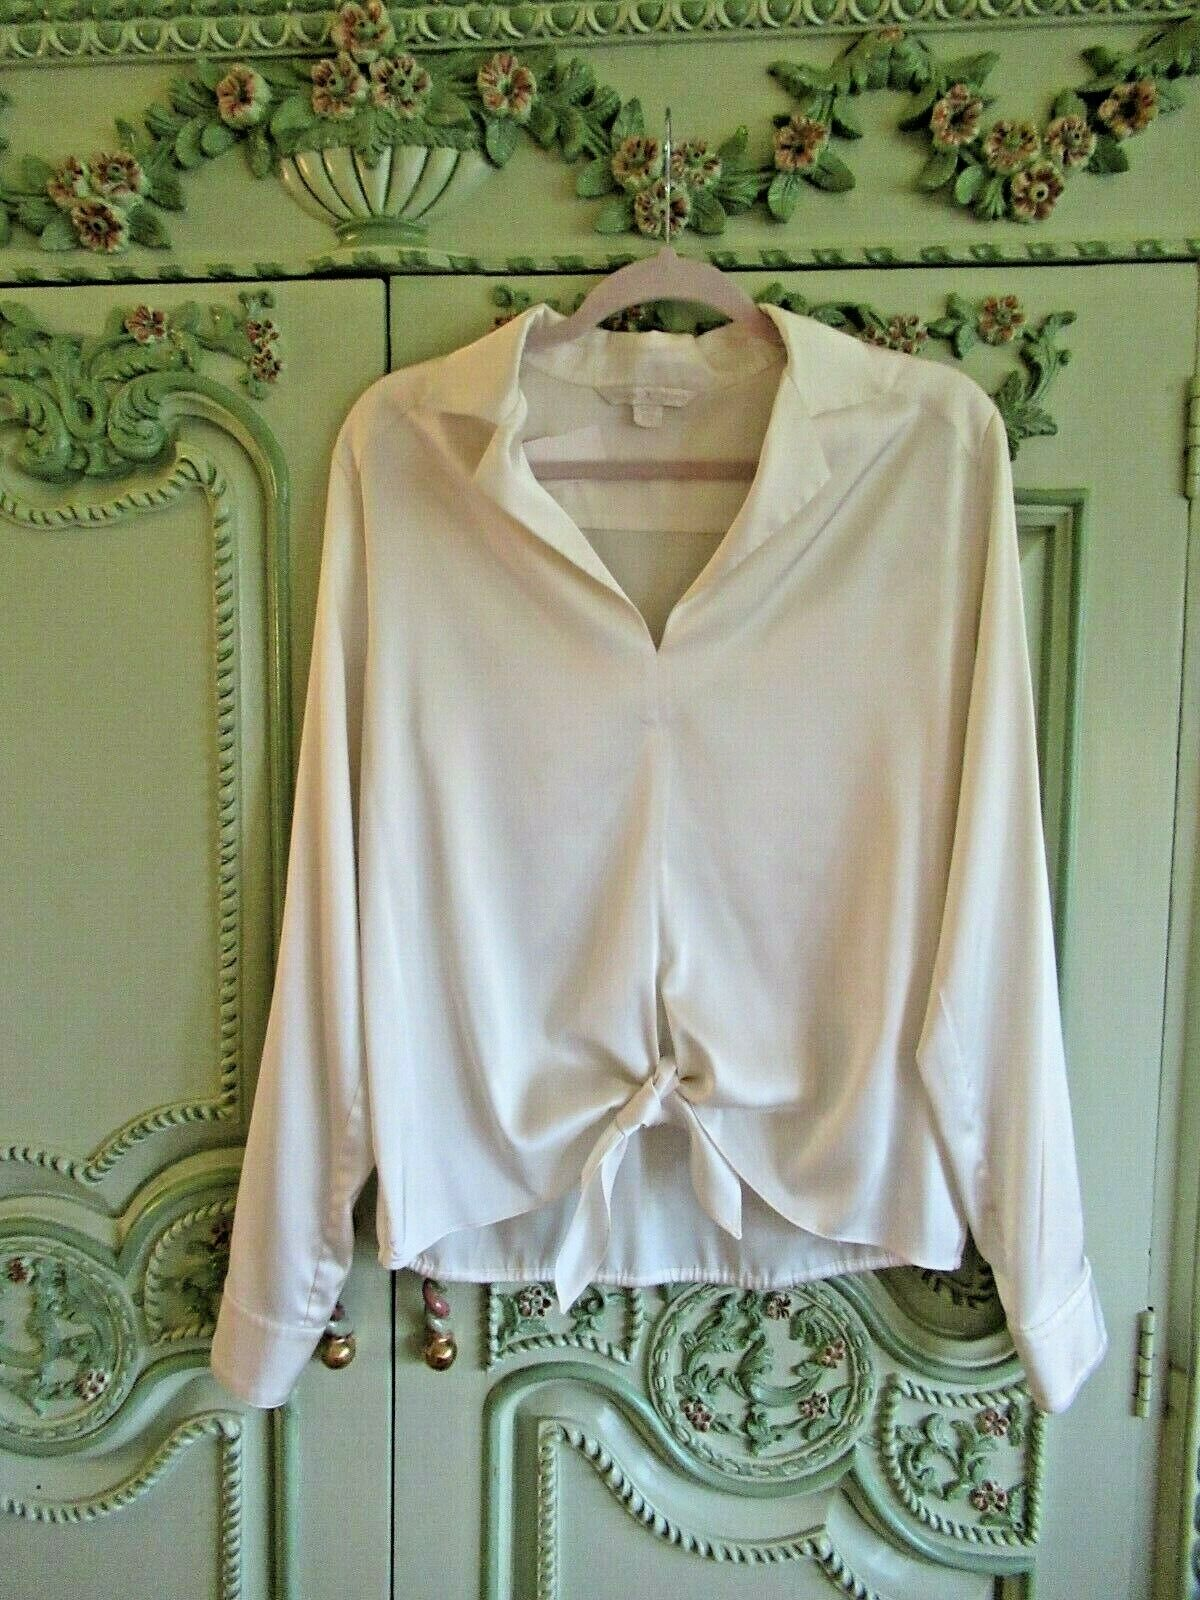 BOSTON PROPER FANCY BLOUSE,16, POLYESTER SPANDEX,TIE AT FRONT WAIST,LONG SLEEVES